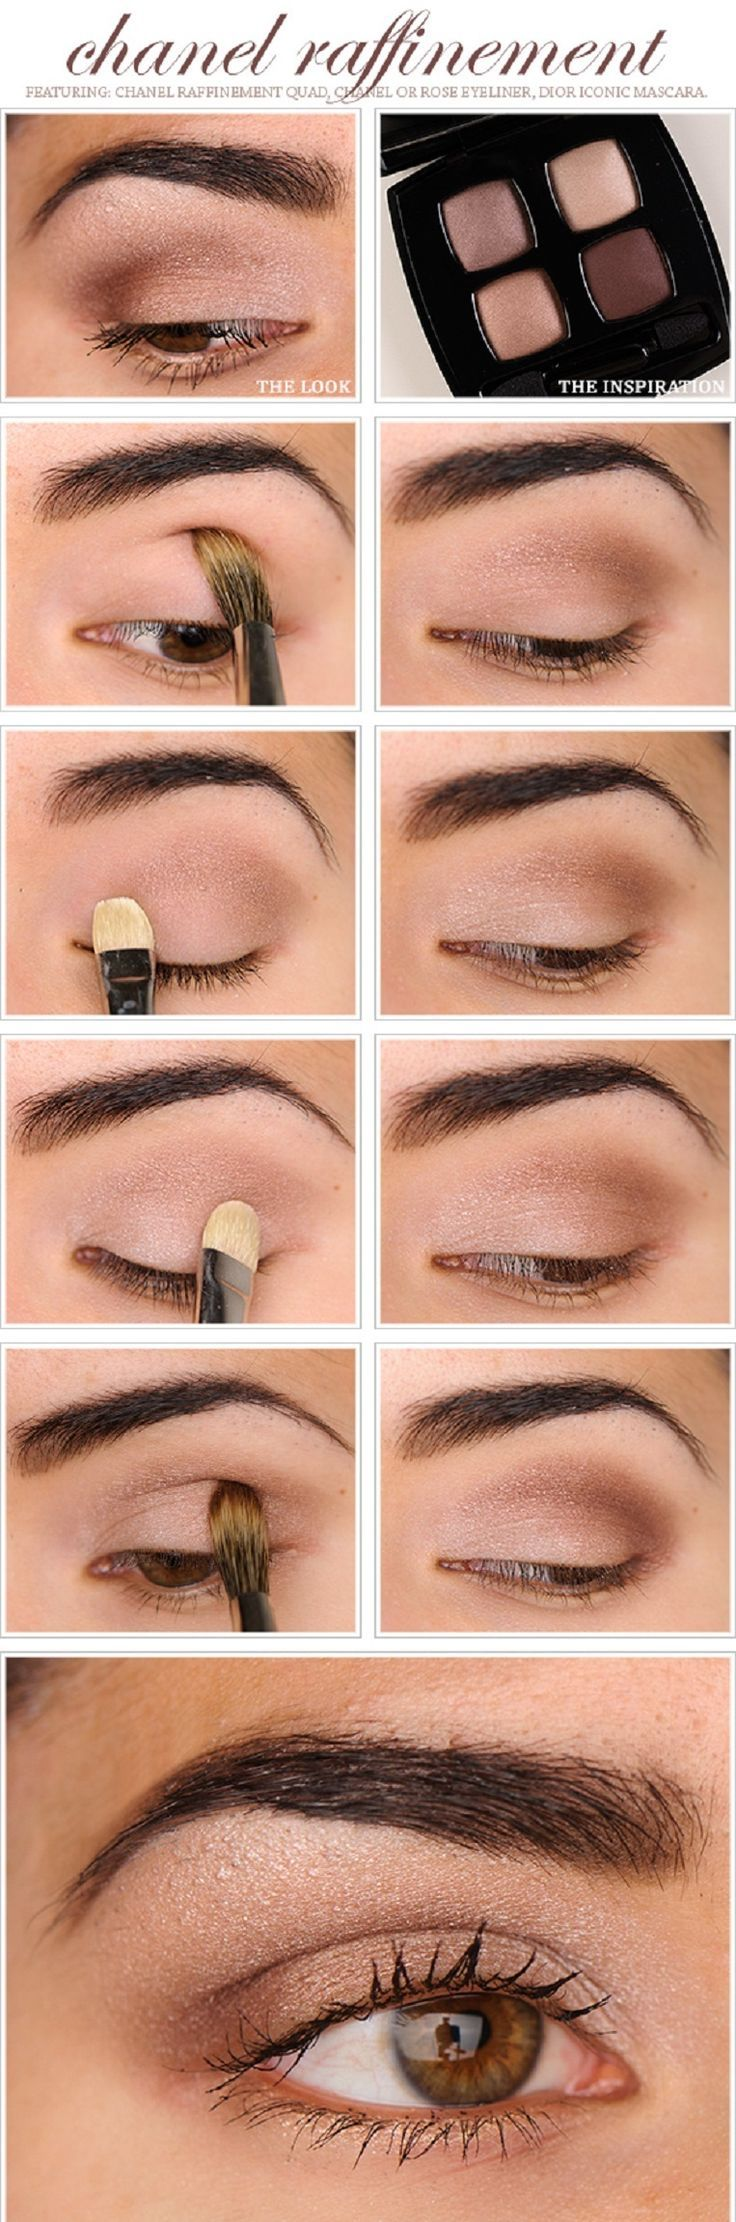 Read More About 10 Brown Eyeshadow Tutorials for Seductive Eyes - GleamItUp